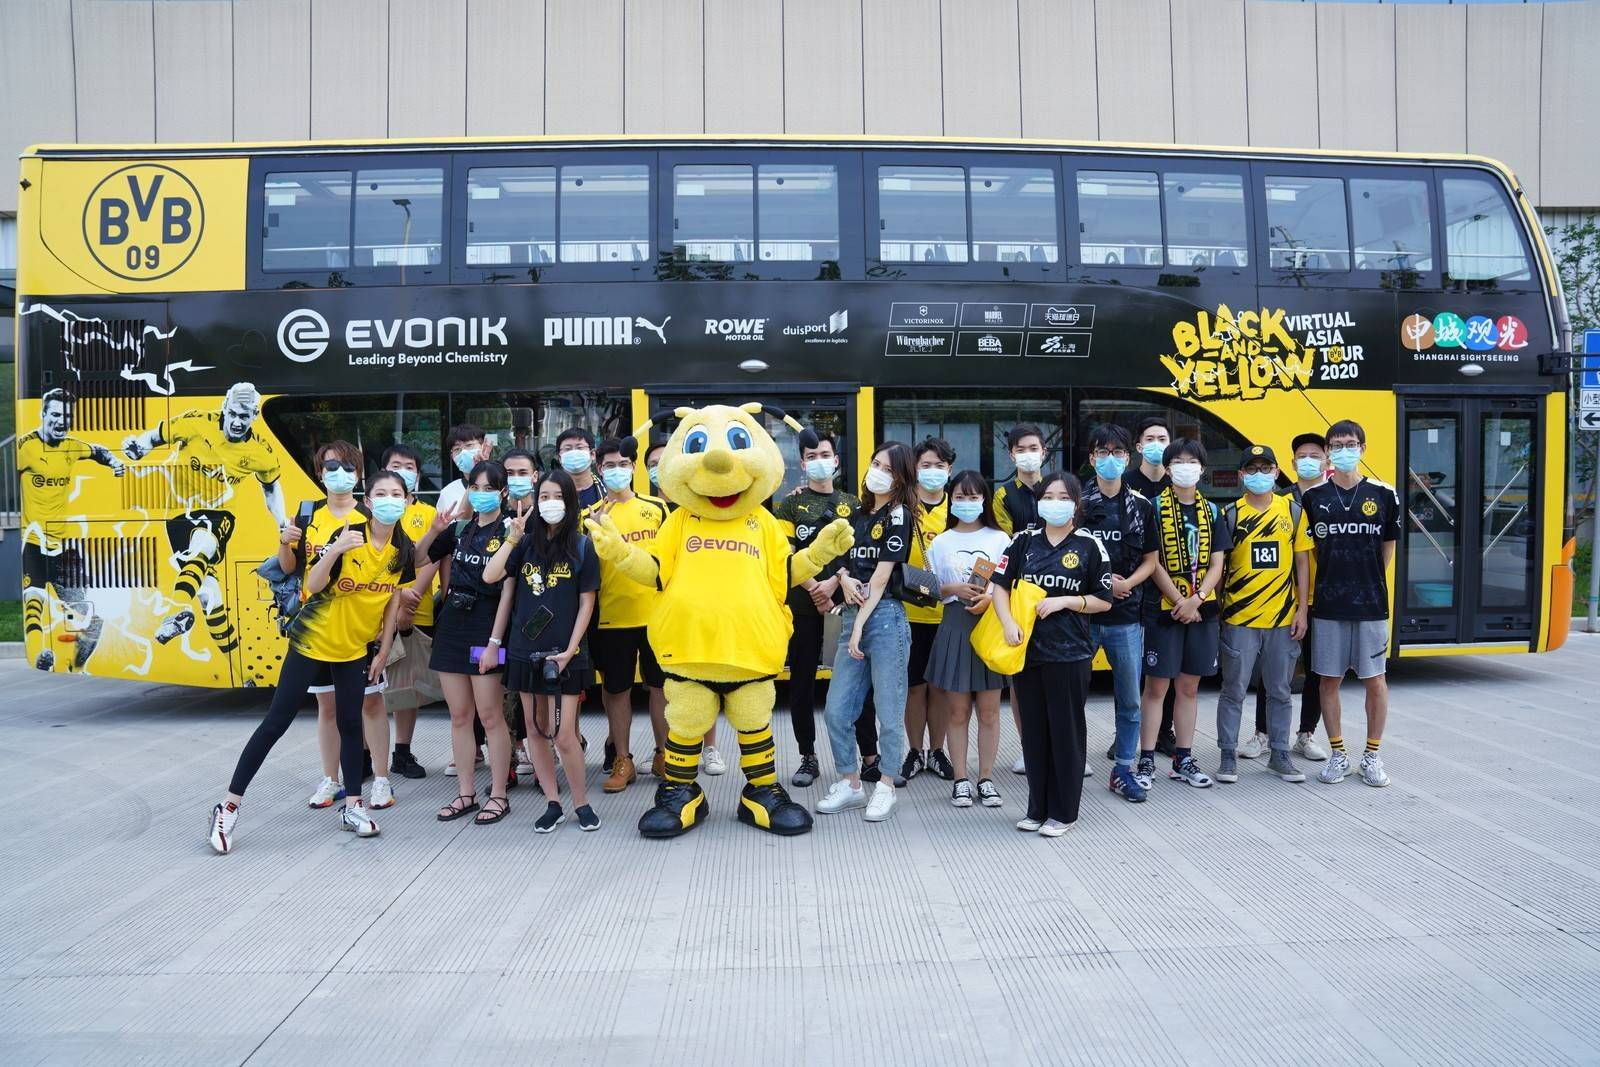 Dortmund mascot Emma poses with Chinese fans in front of a bus promoting the team's virtual tour of Asia on Aug. 19 in Shanghai. | BORUSSIA DORTMUND